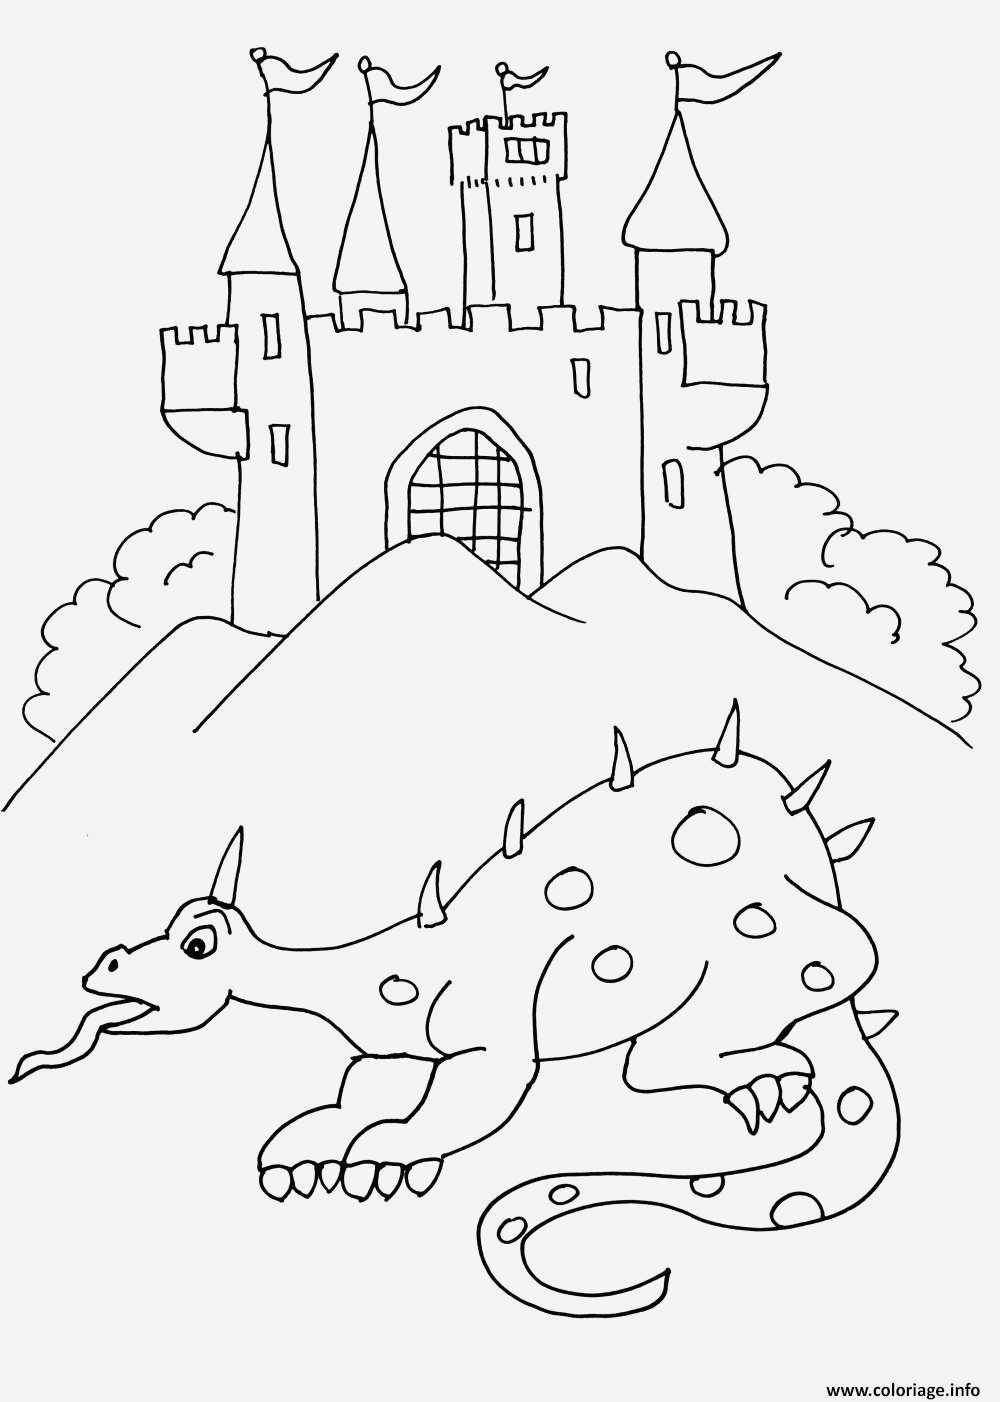 Coloriage Chateau Princesse Awesome Coloriage Chateau De Chevalier 8 Dessin